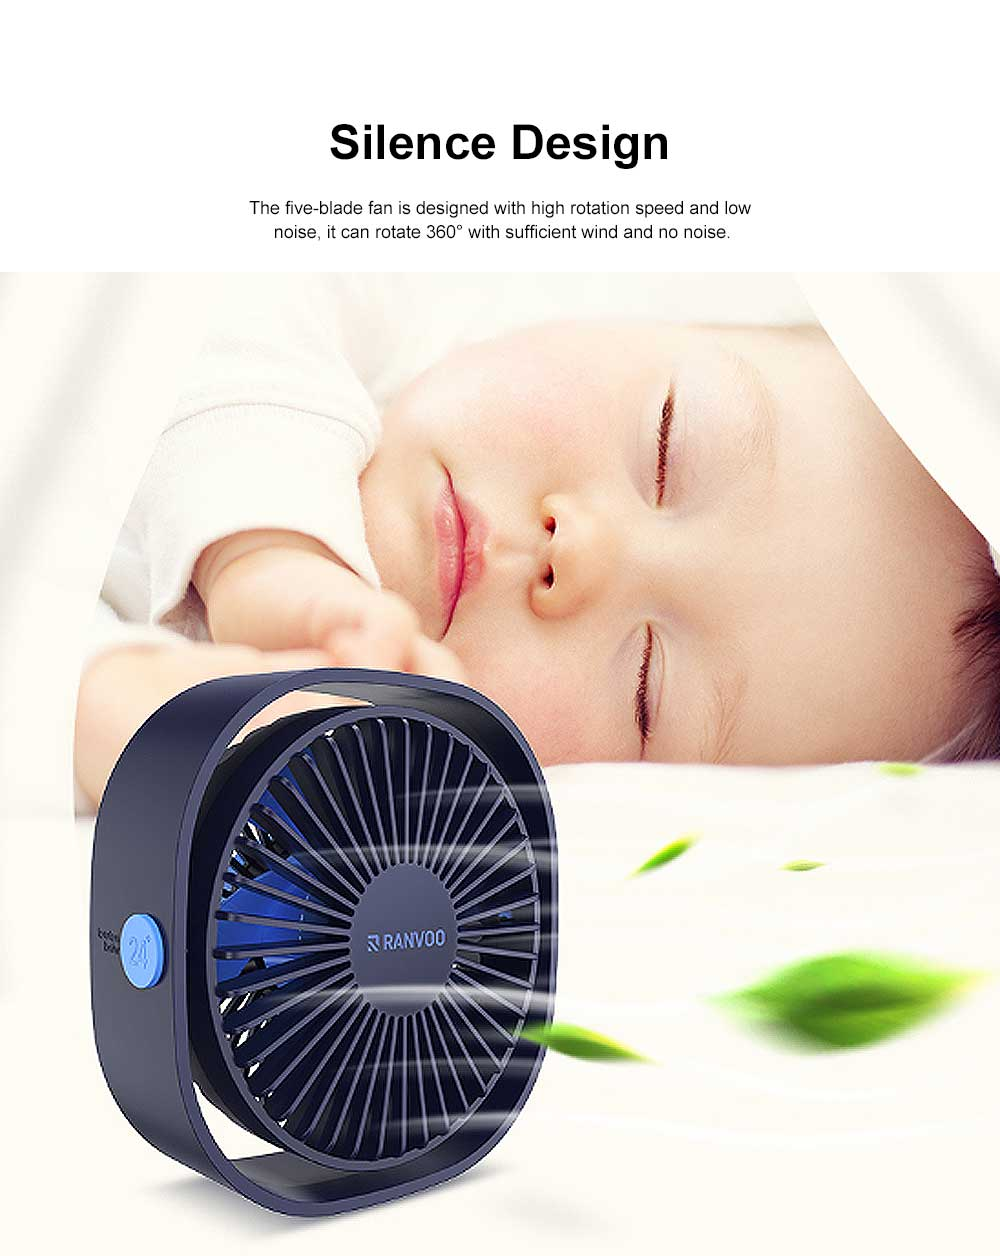 Mini Fan USB Chargeable for Hot Day Silence Outside Office Desk Portable 360° Rotation Fan 2